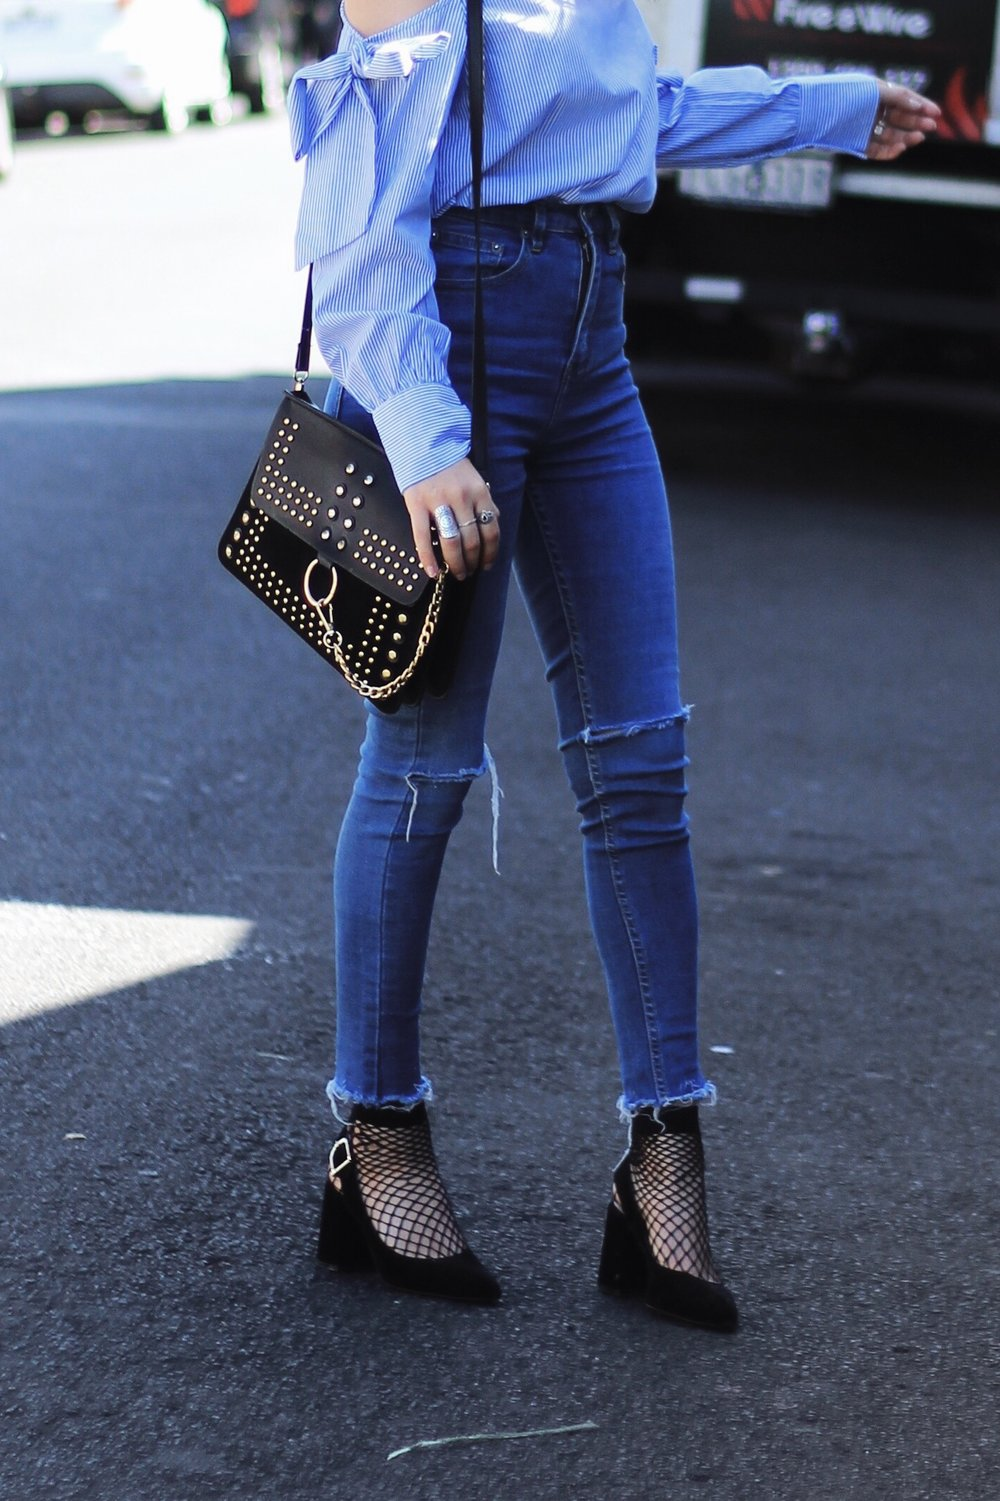 Shein, Shein bloggers, how to wear a ruffle blouse, 2017 spring fashion trends, 2017 fall winter fashion trends, melbourne fashion blog, melbourne fashion blogger, melbourne blogger, how to wear the fishnet trend, fishnet and jeans trend, cheap chanel sling back heels, ivana petrovic, ivana, wewhowander, we who wander, street style bloggers, melbourne street style, raw hems on jeans, chloe studded faye bag dupe, vegan designer bag alternatives,